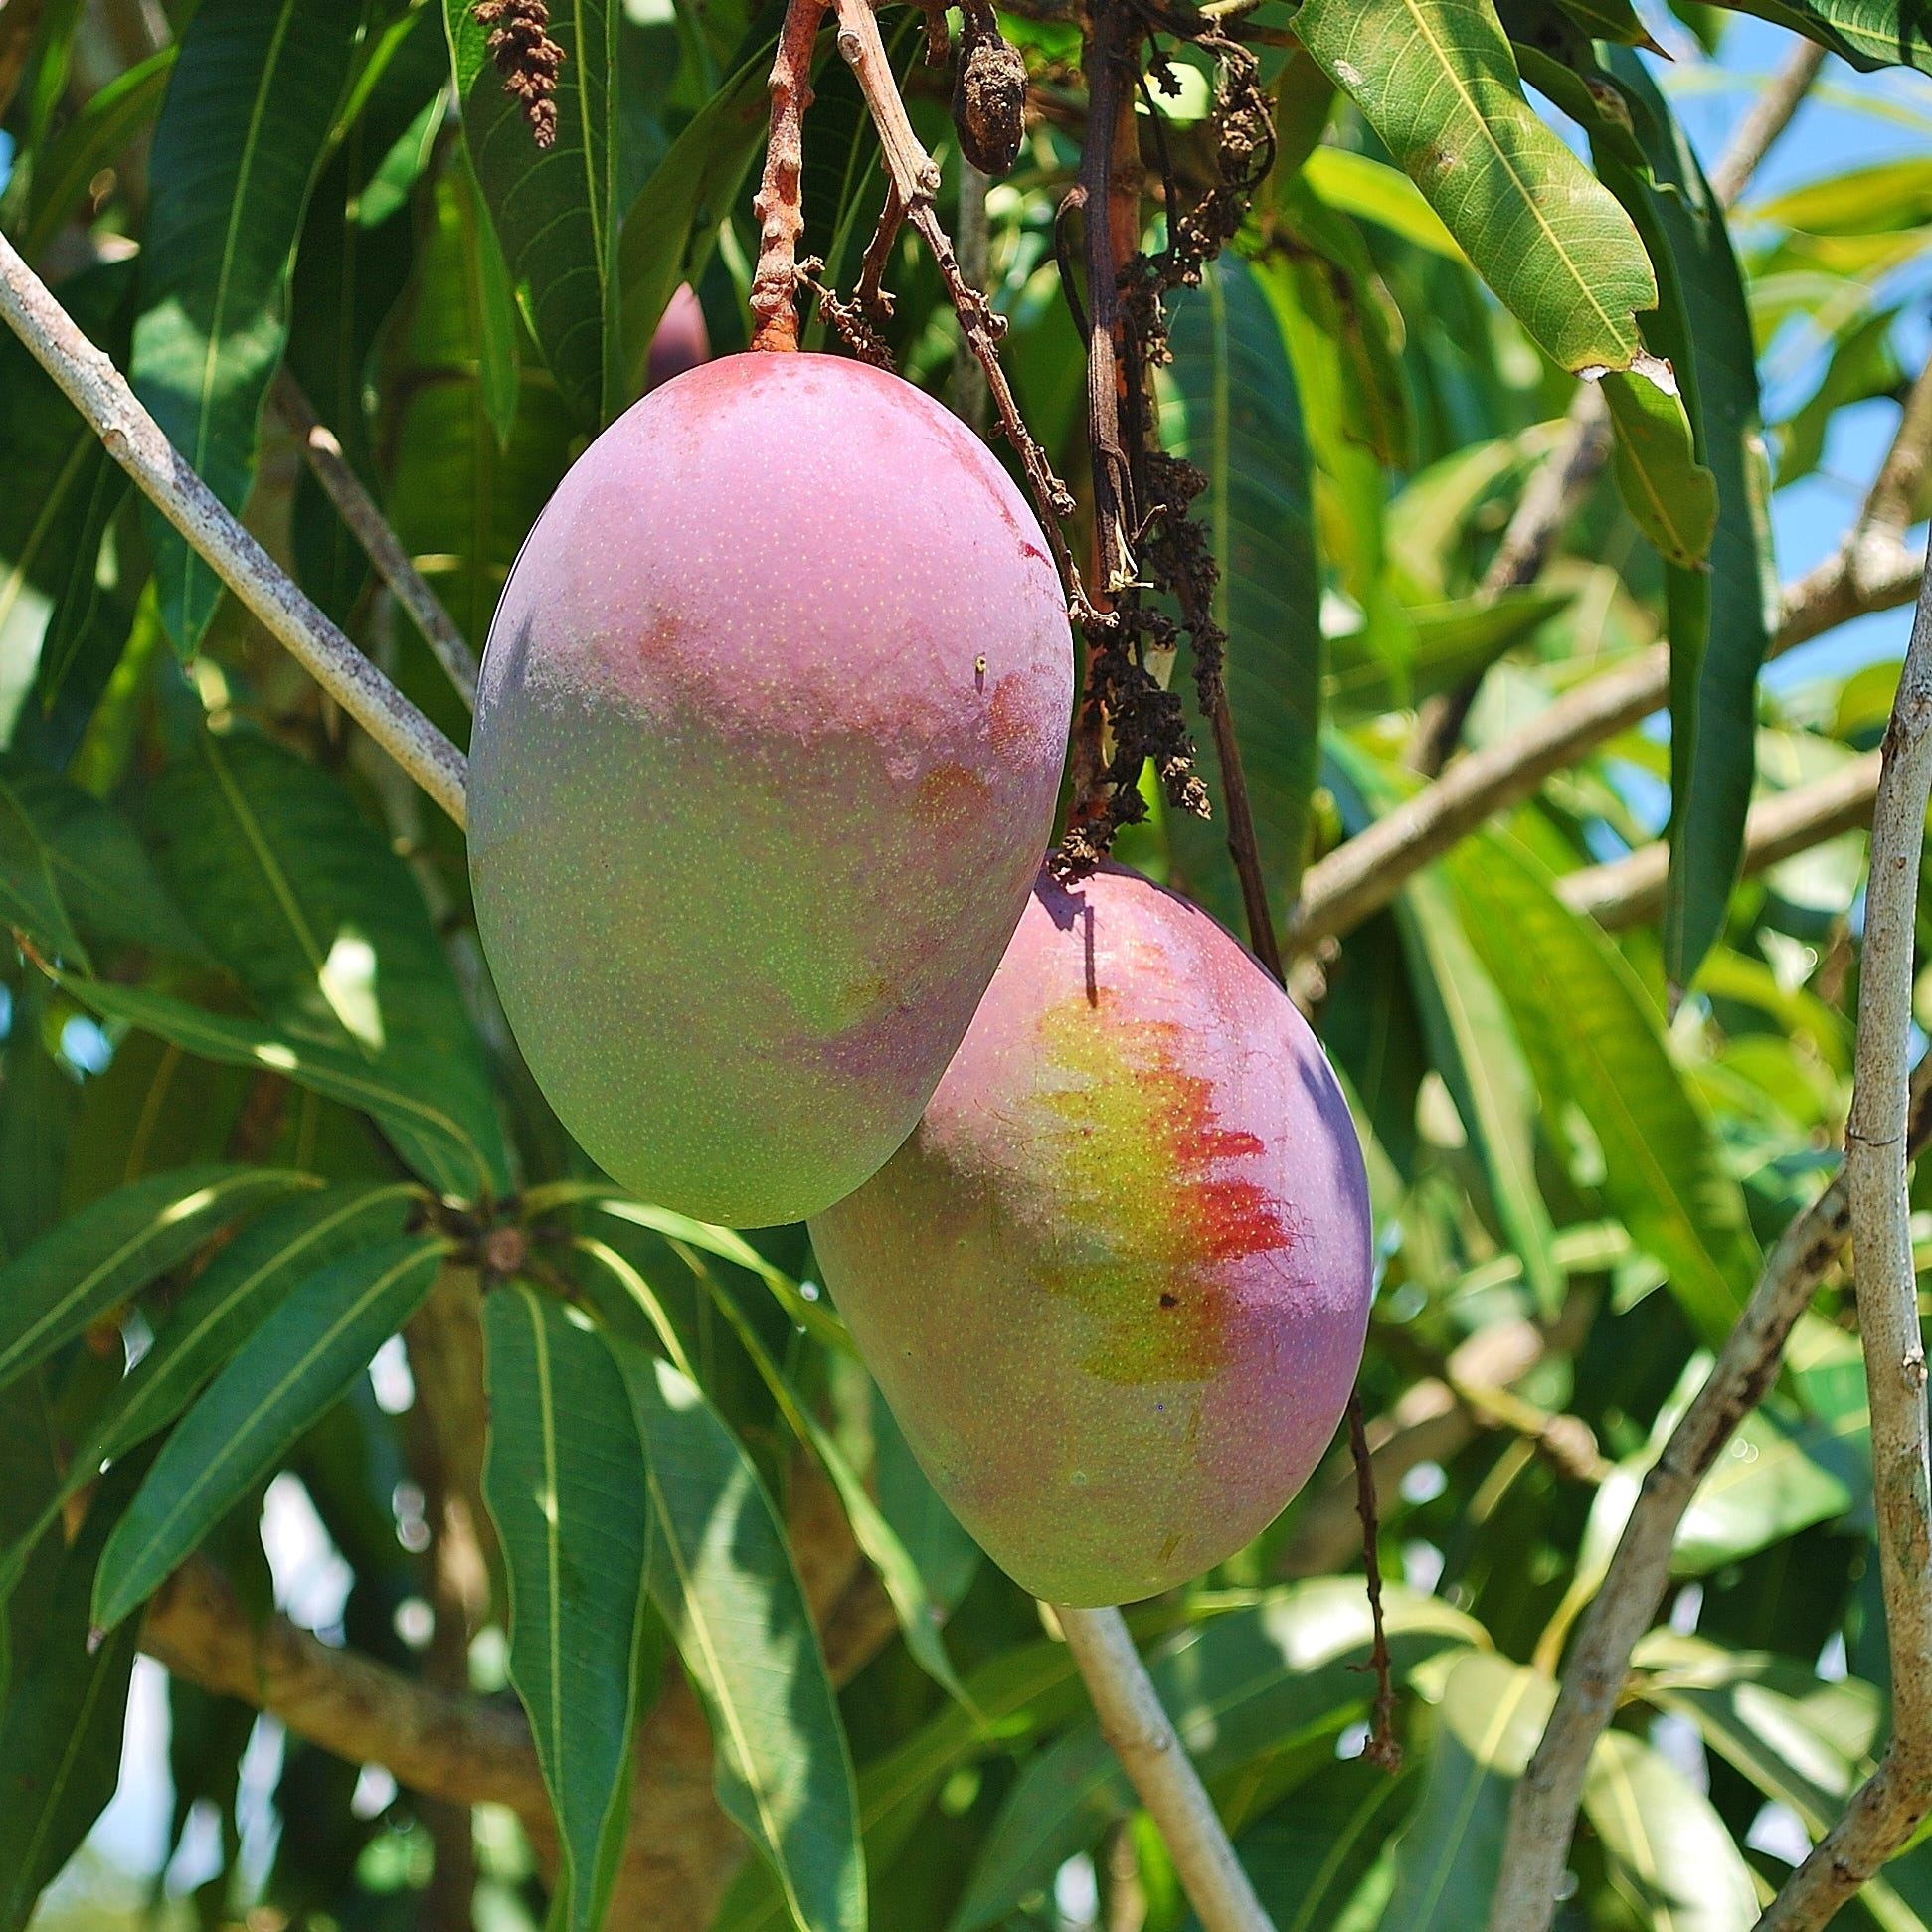 Yard doc: What's going on when mango tree doesn't yield any fruit?